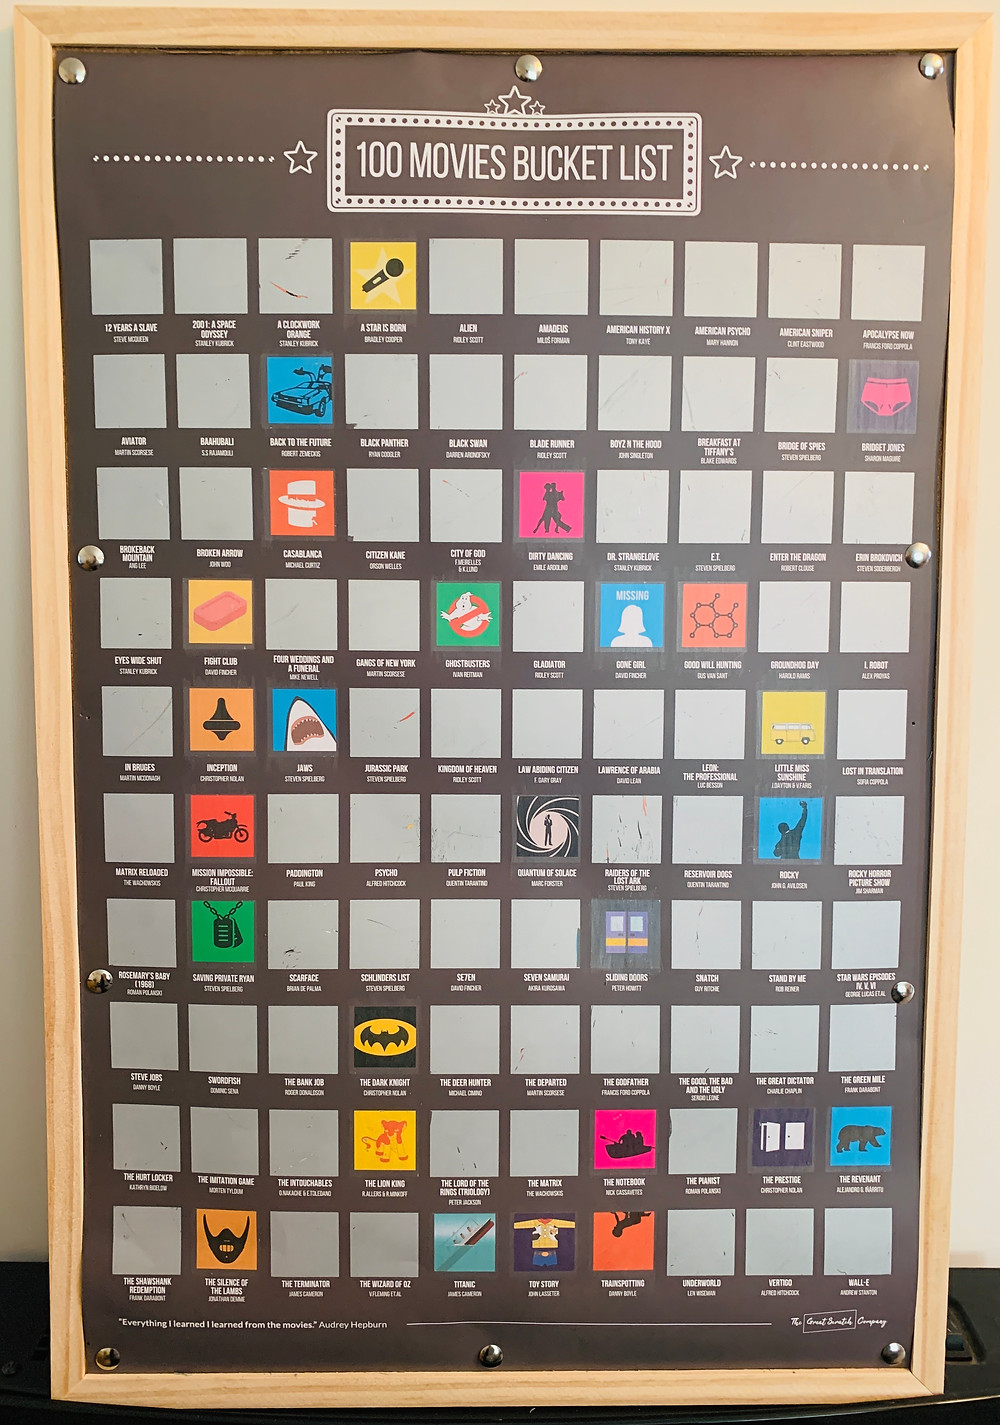 A poster listing 100 classic films, where you scratch off the box of each one you have watched